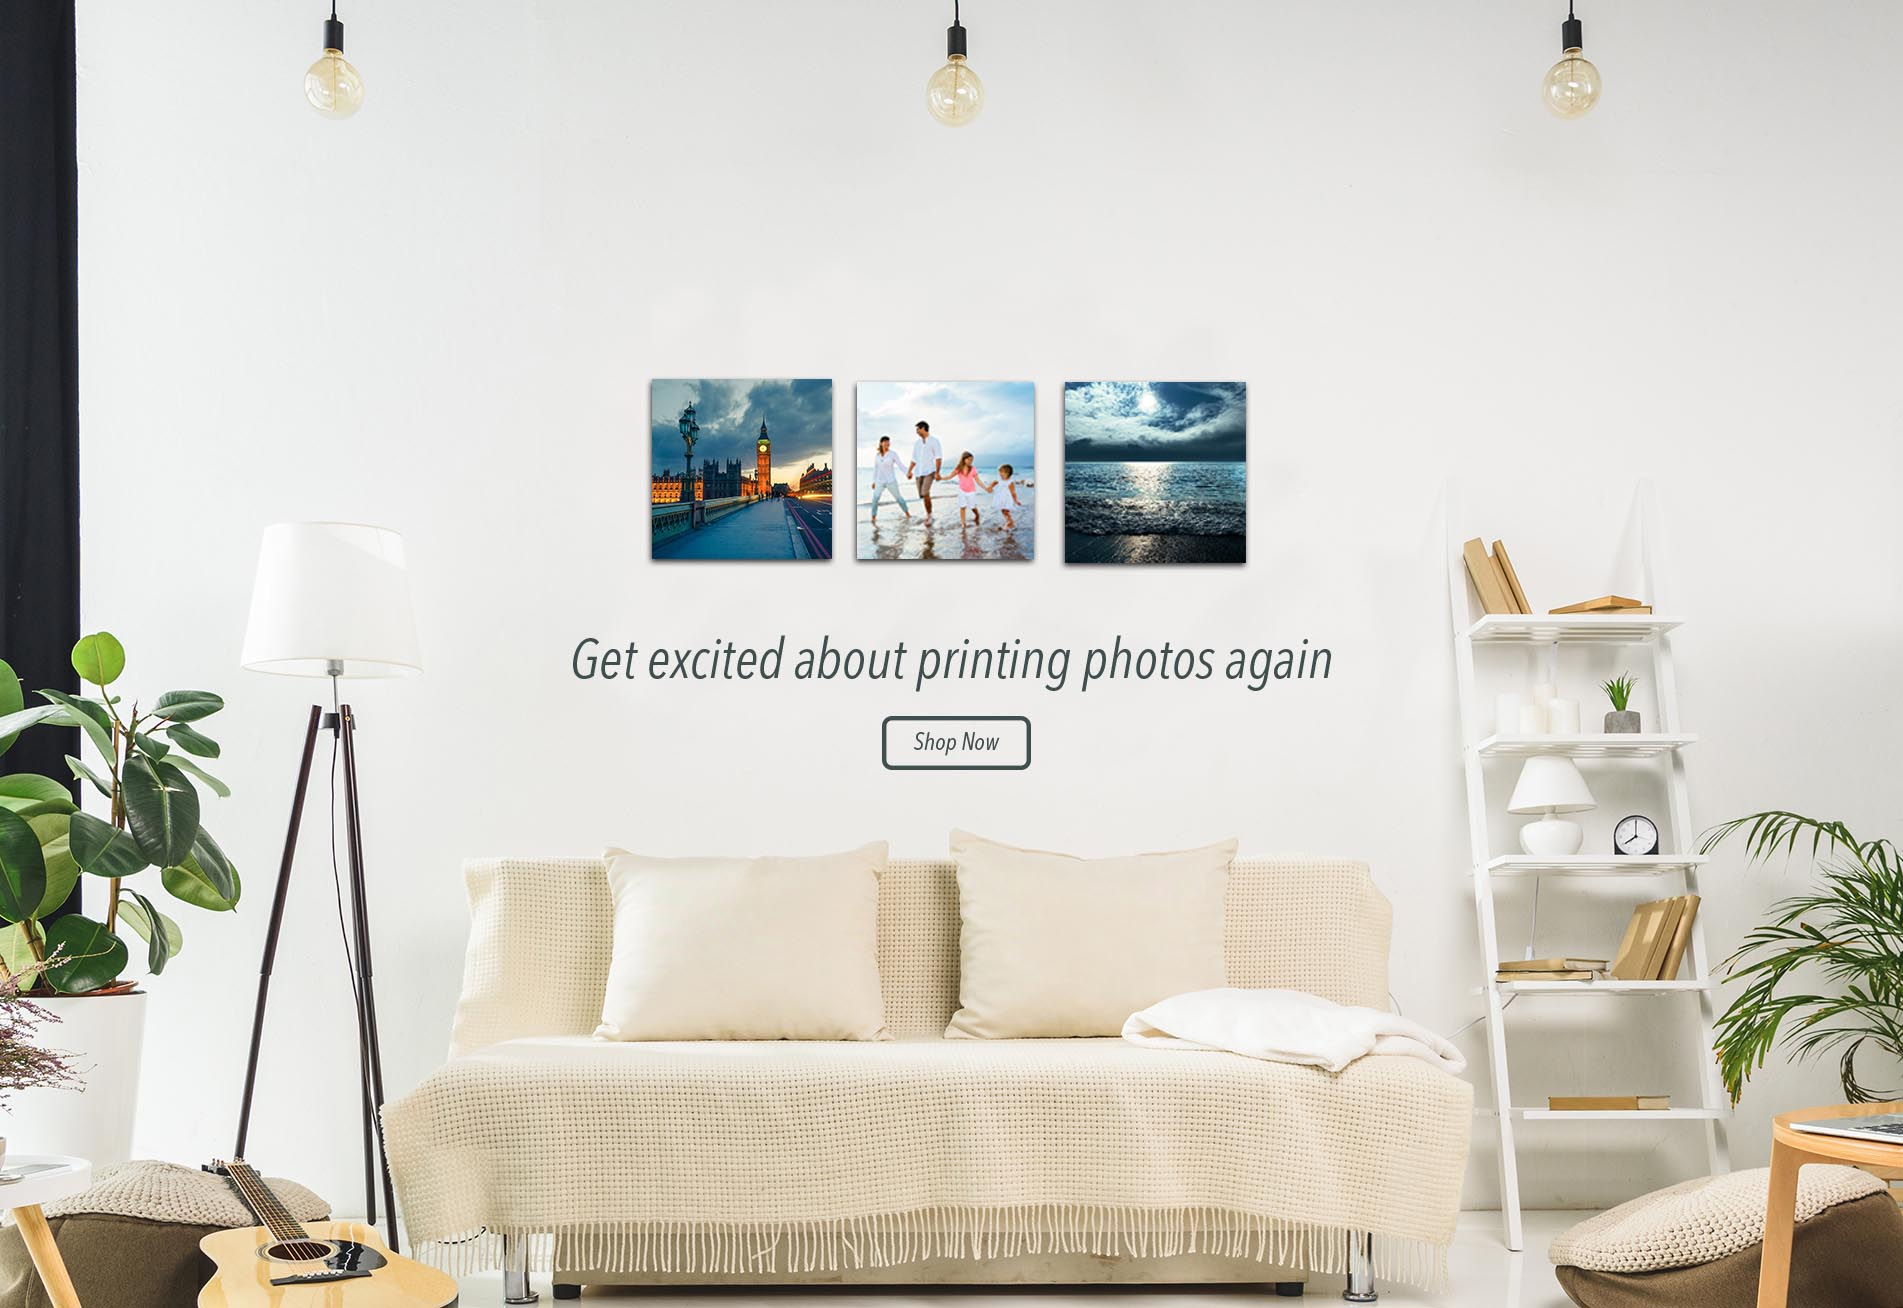 Get excited about printing photos again